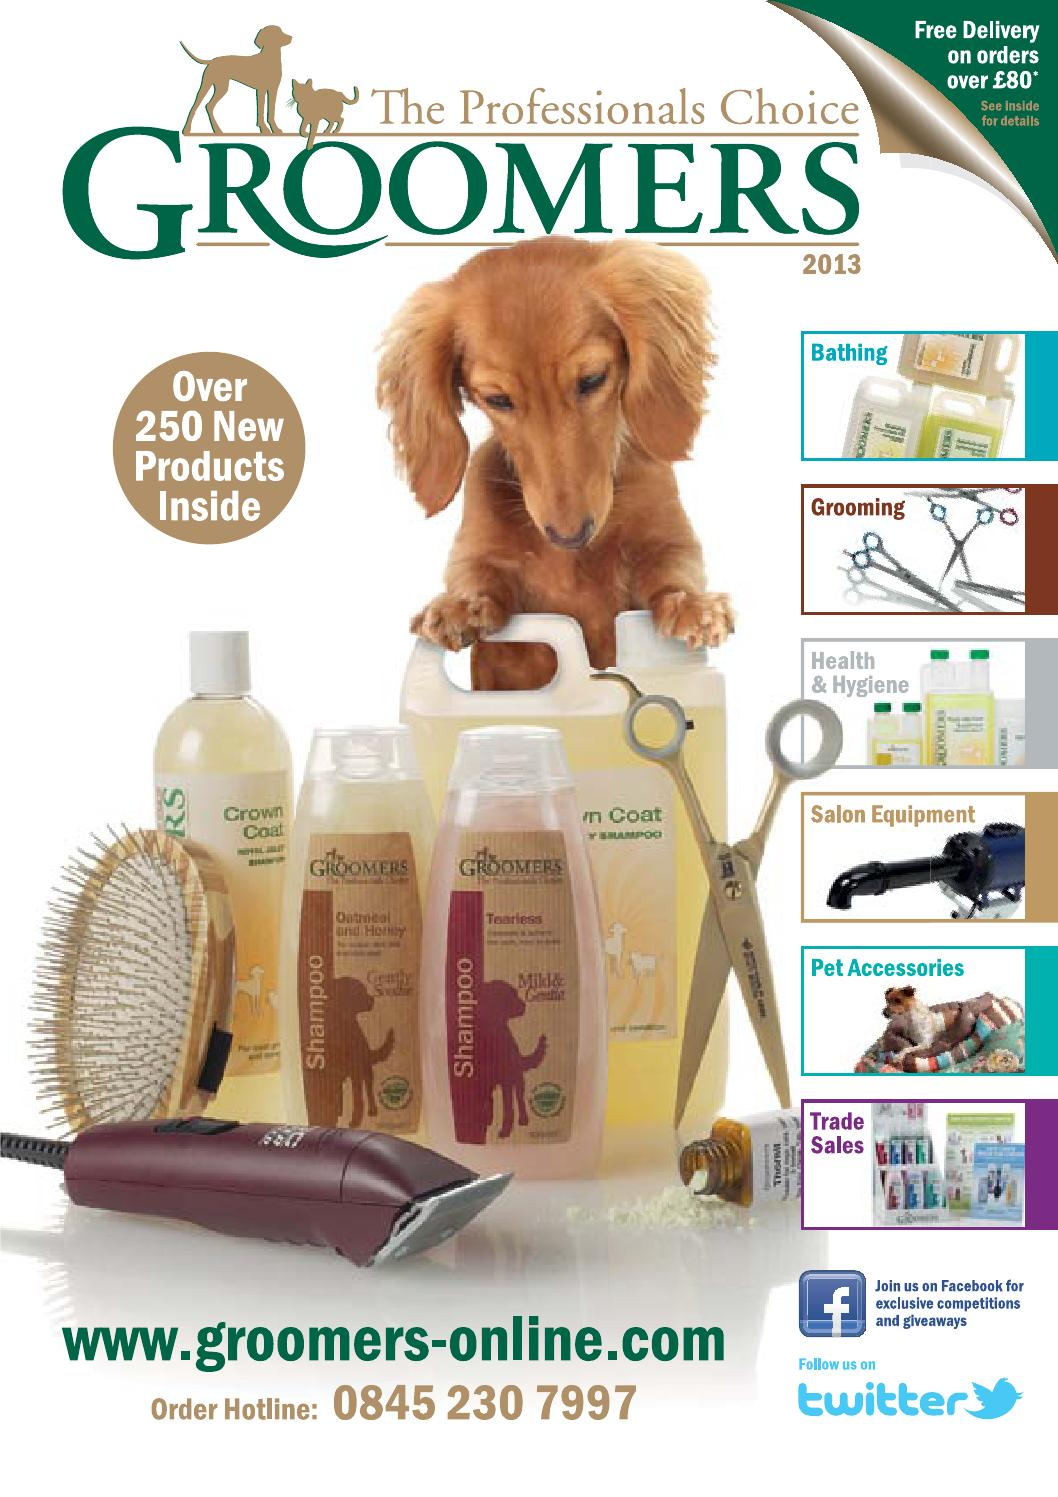 Groomers Catalogue 2013 By Cim Online Ltd Issuu Bite Fighters Advance Mosquito Repellent Lotion With Rolling Ball 100ml